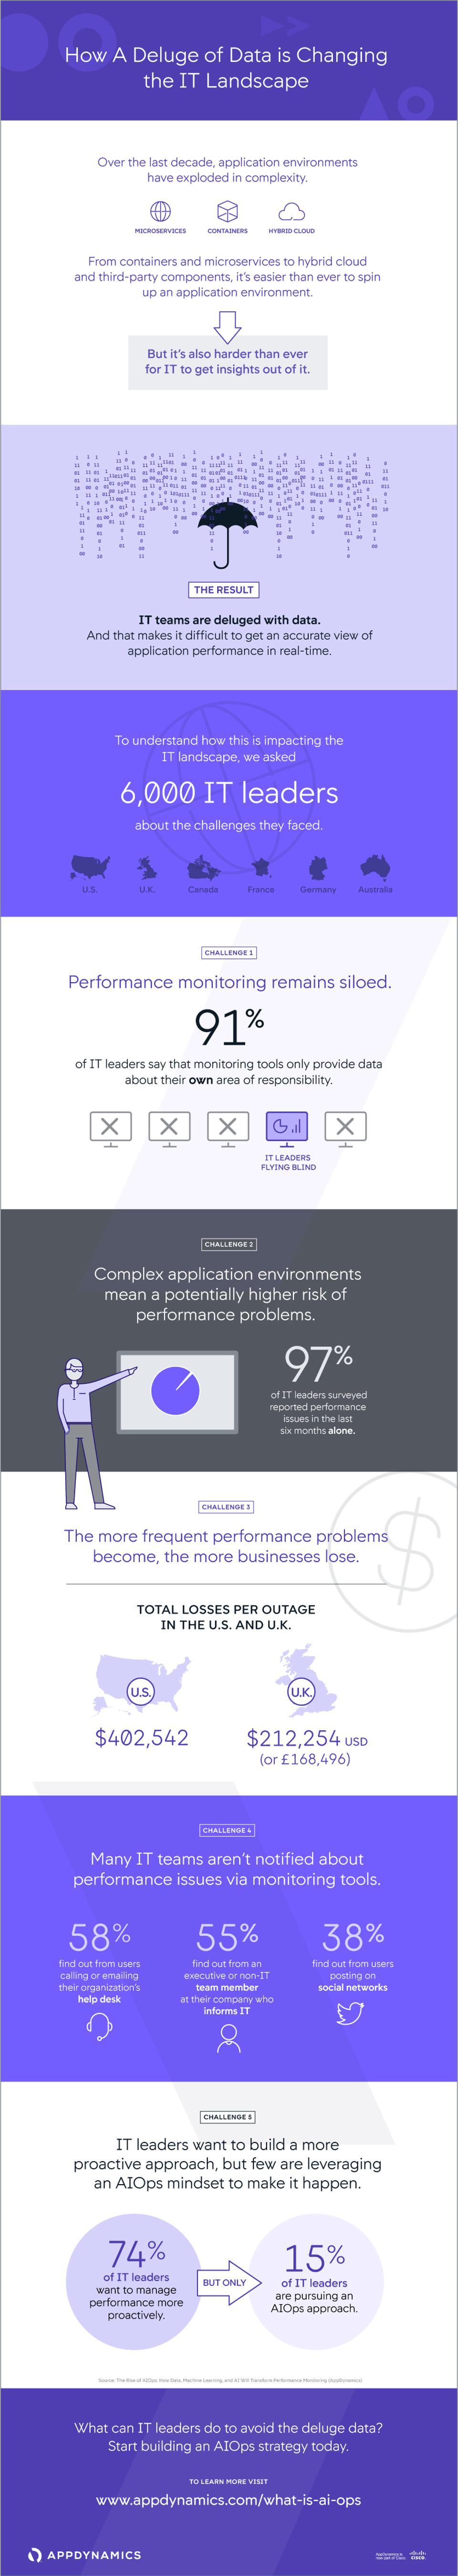 How A Deluge Of Data Is Changing The IT Landscape [Infographic]